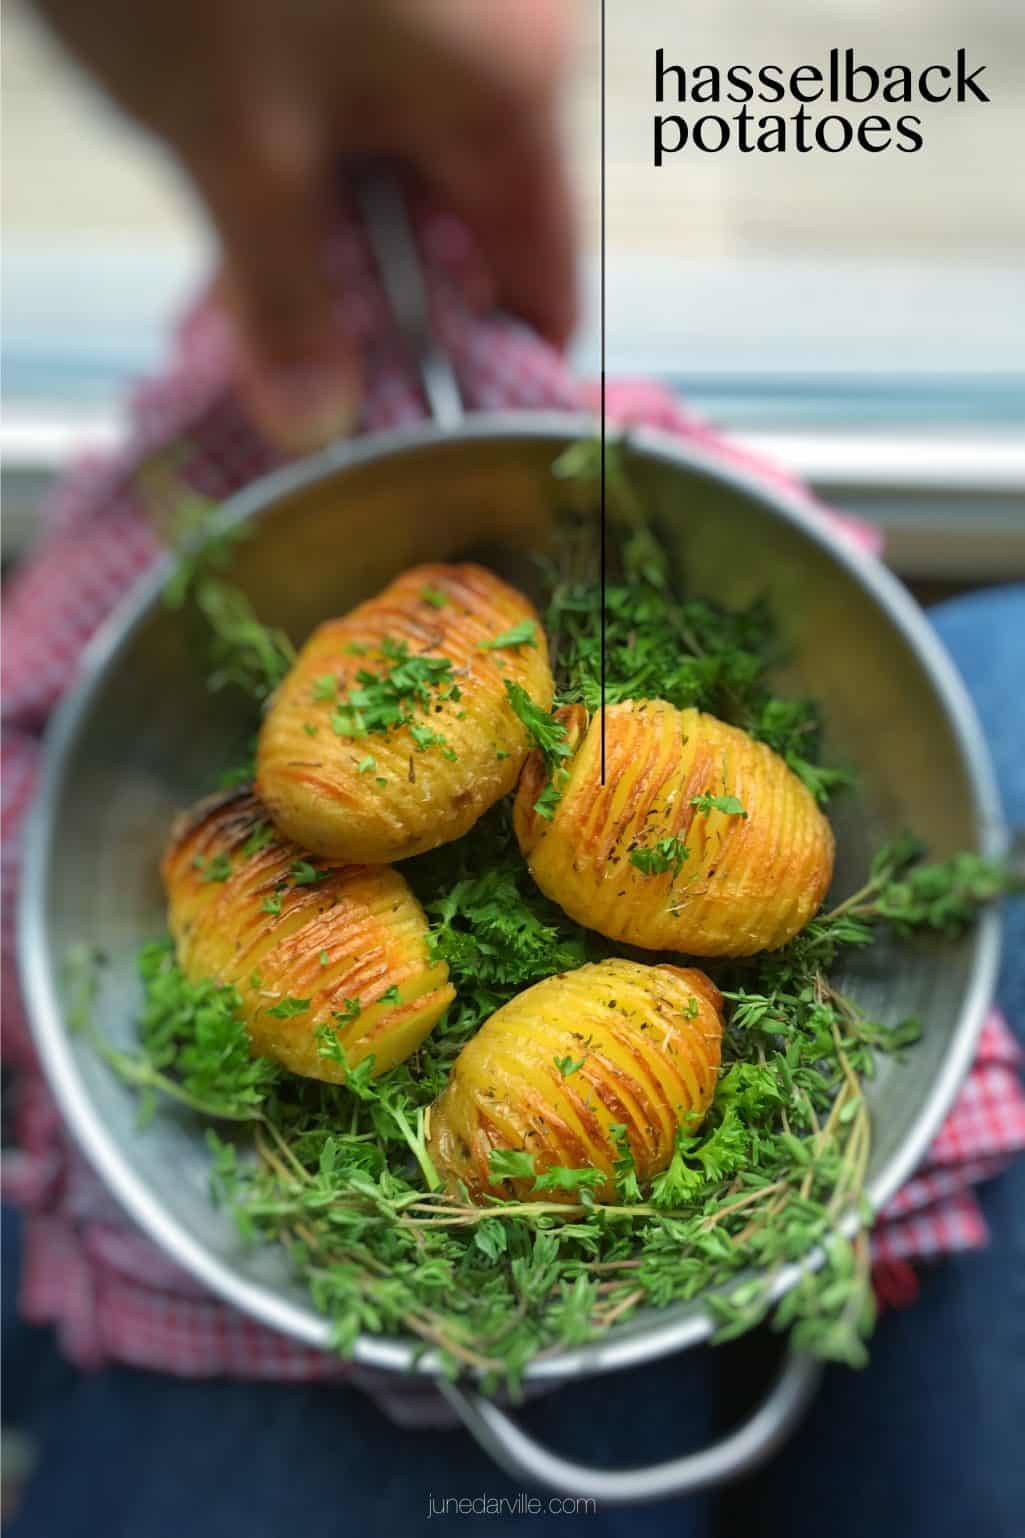 Hasselback potatoes, what a surprising and cute looking potato side dish! Apparently hasselback potatoes are a Swedish specialty.